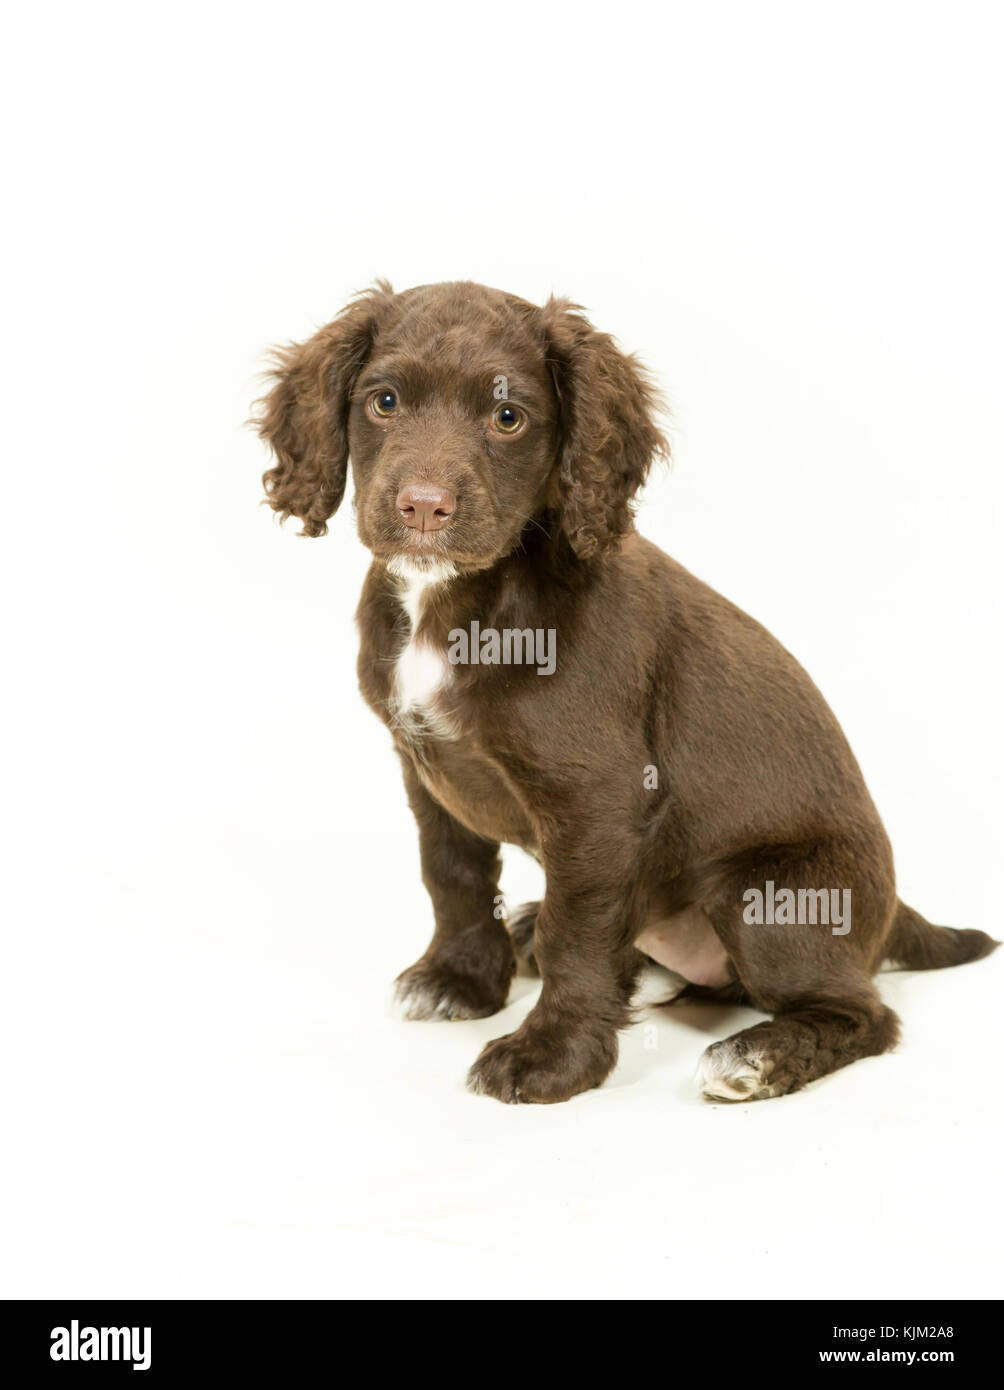 Working Cocker Spaniel Puppy on White Background - Stock Image